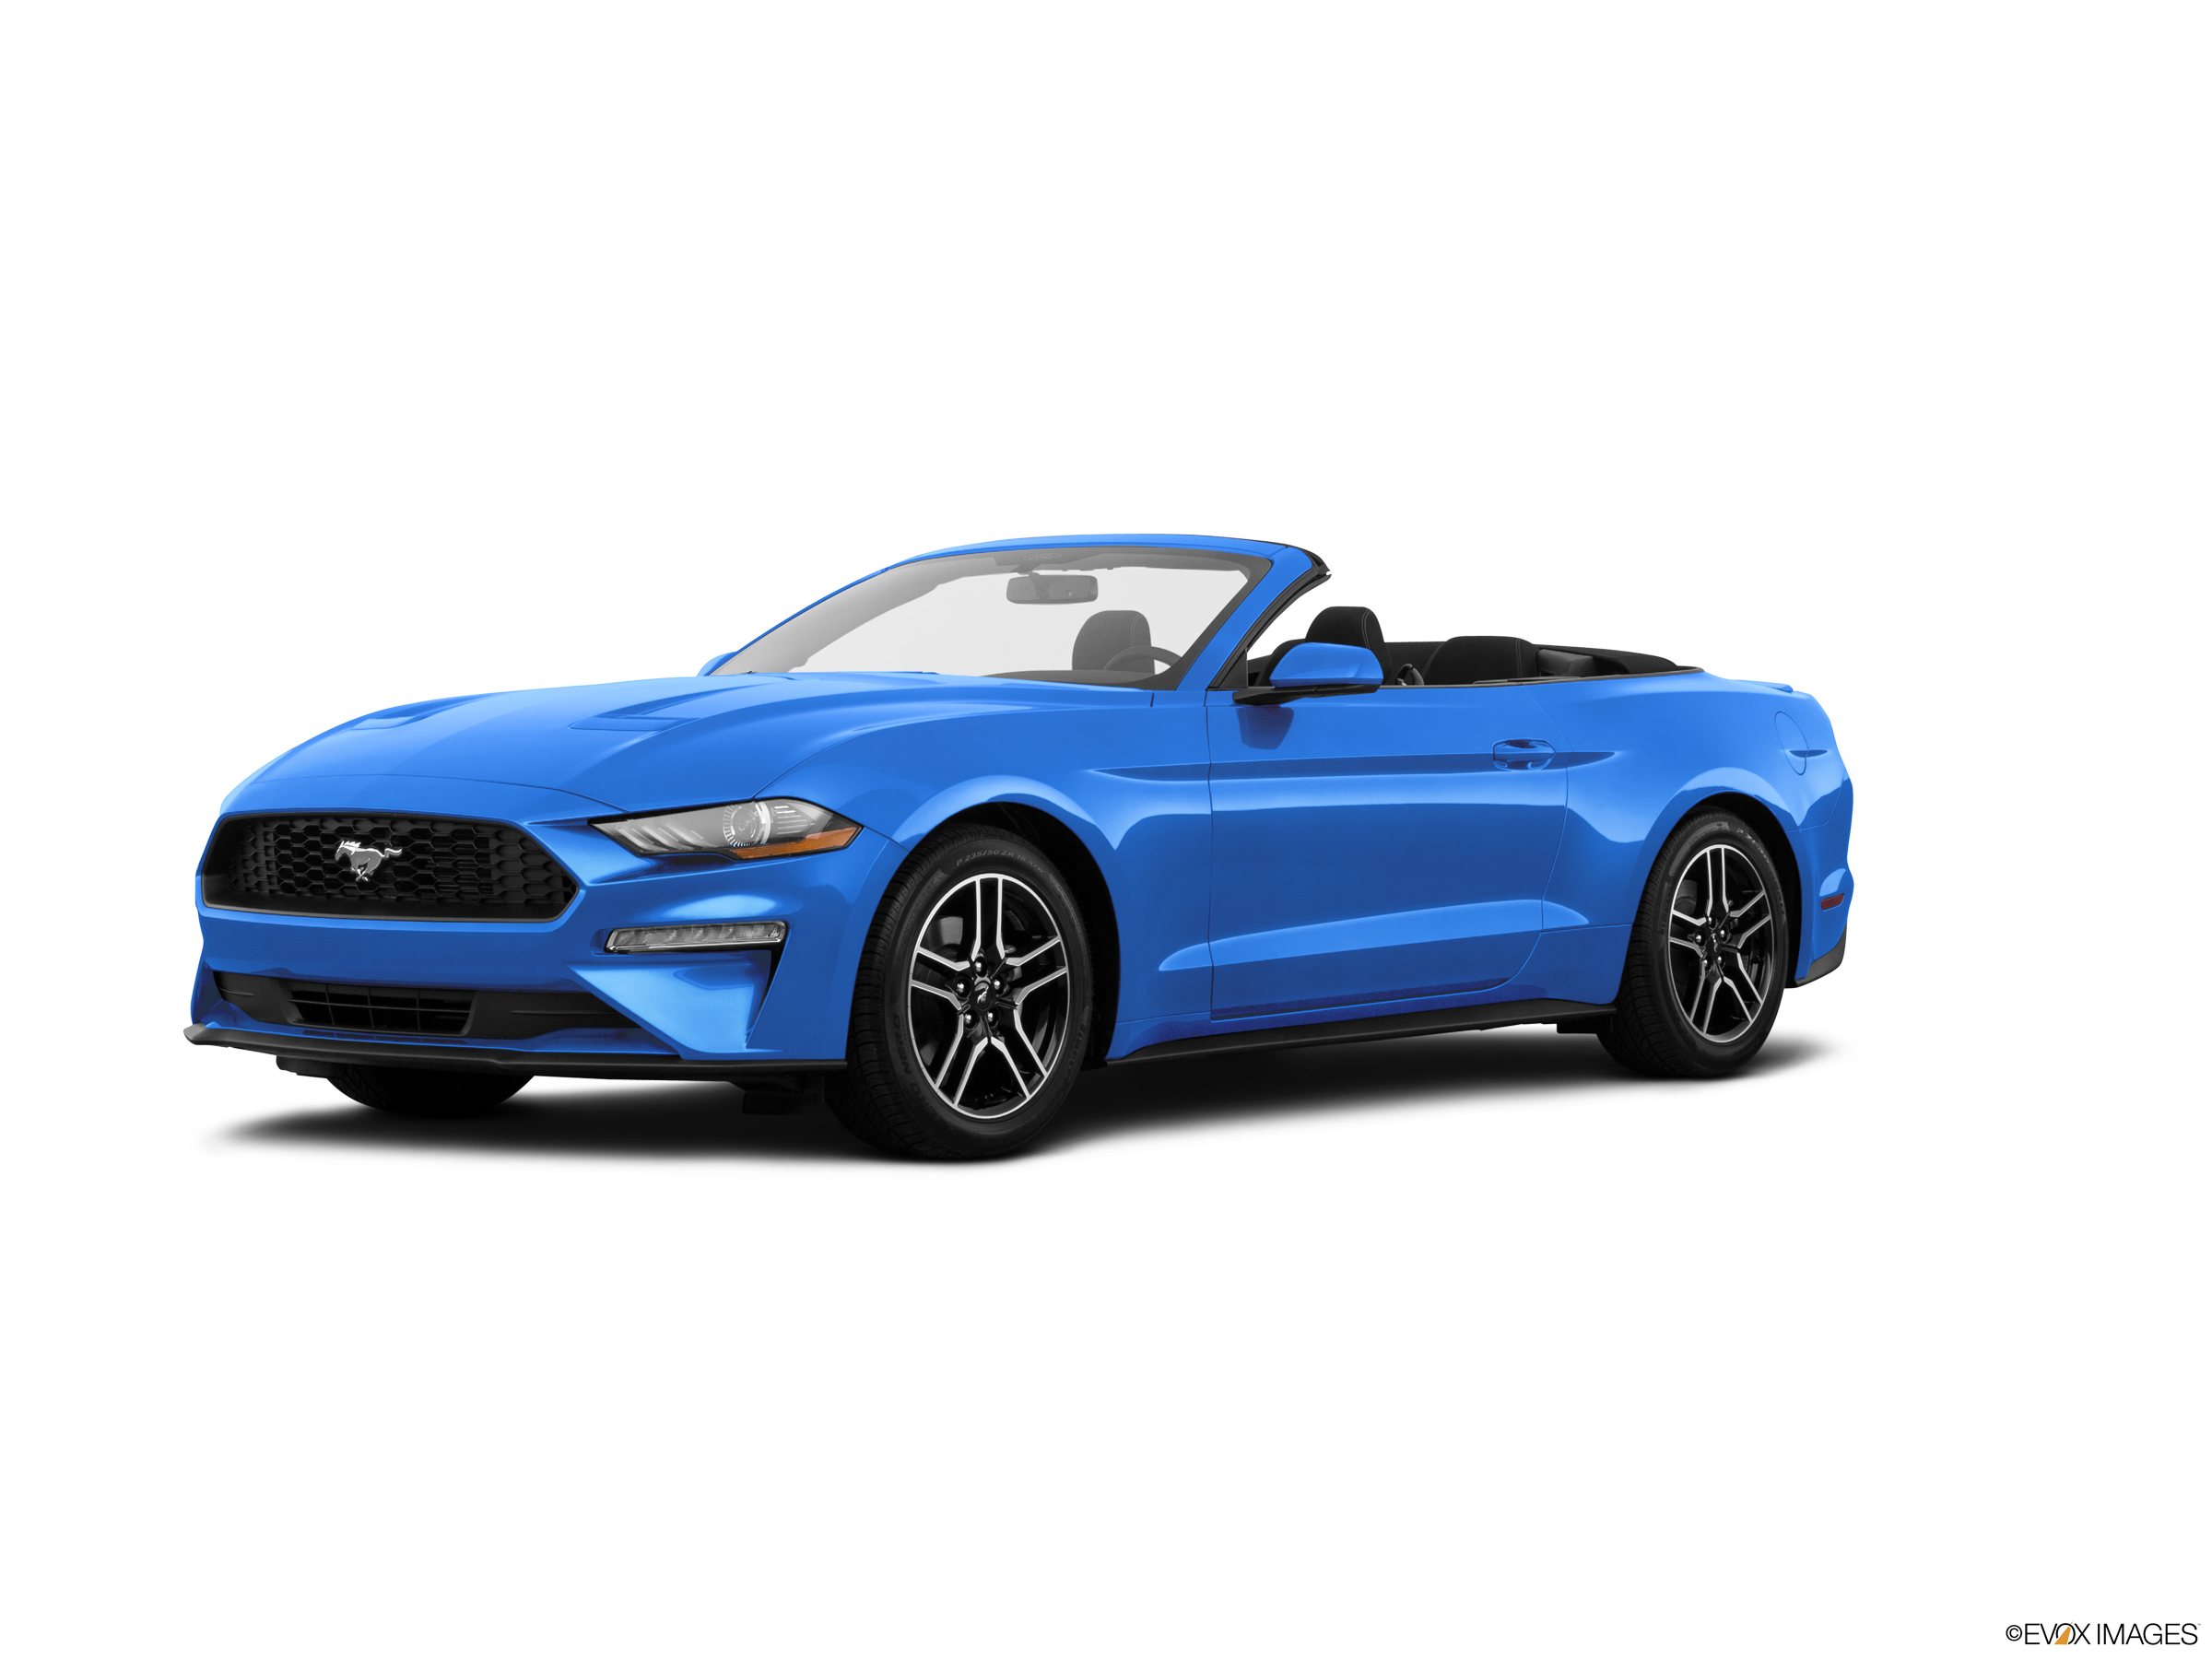 Ford-Mustang-GT-convertible